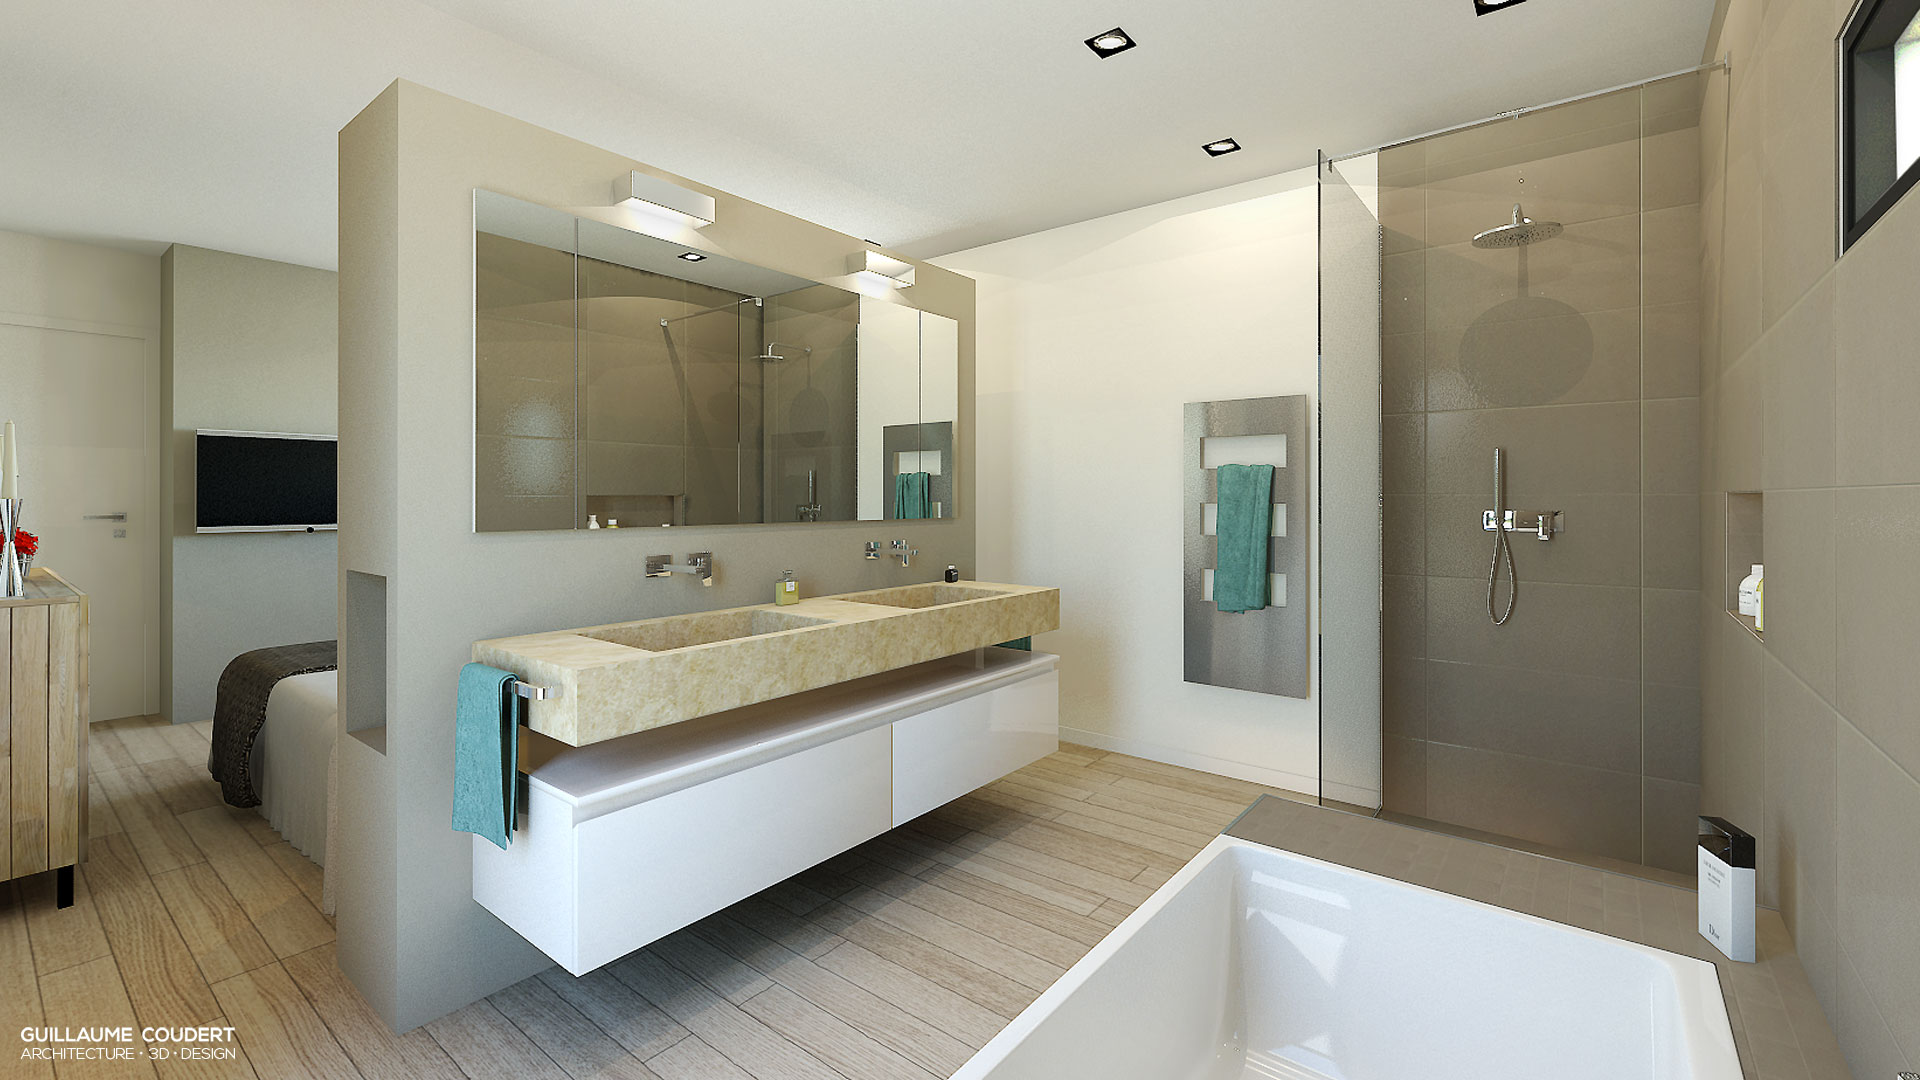 Architecte interieur salle de bain architecte d 39 int for Architecte interieur salle de bain